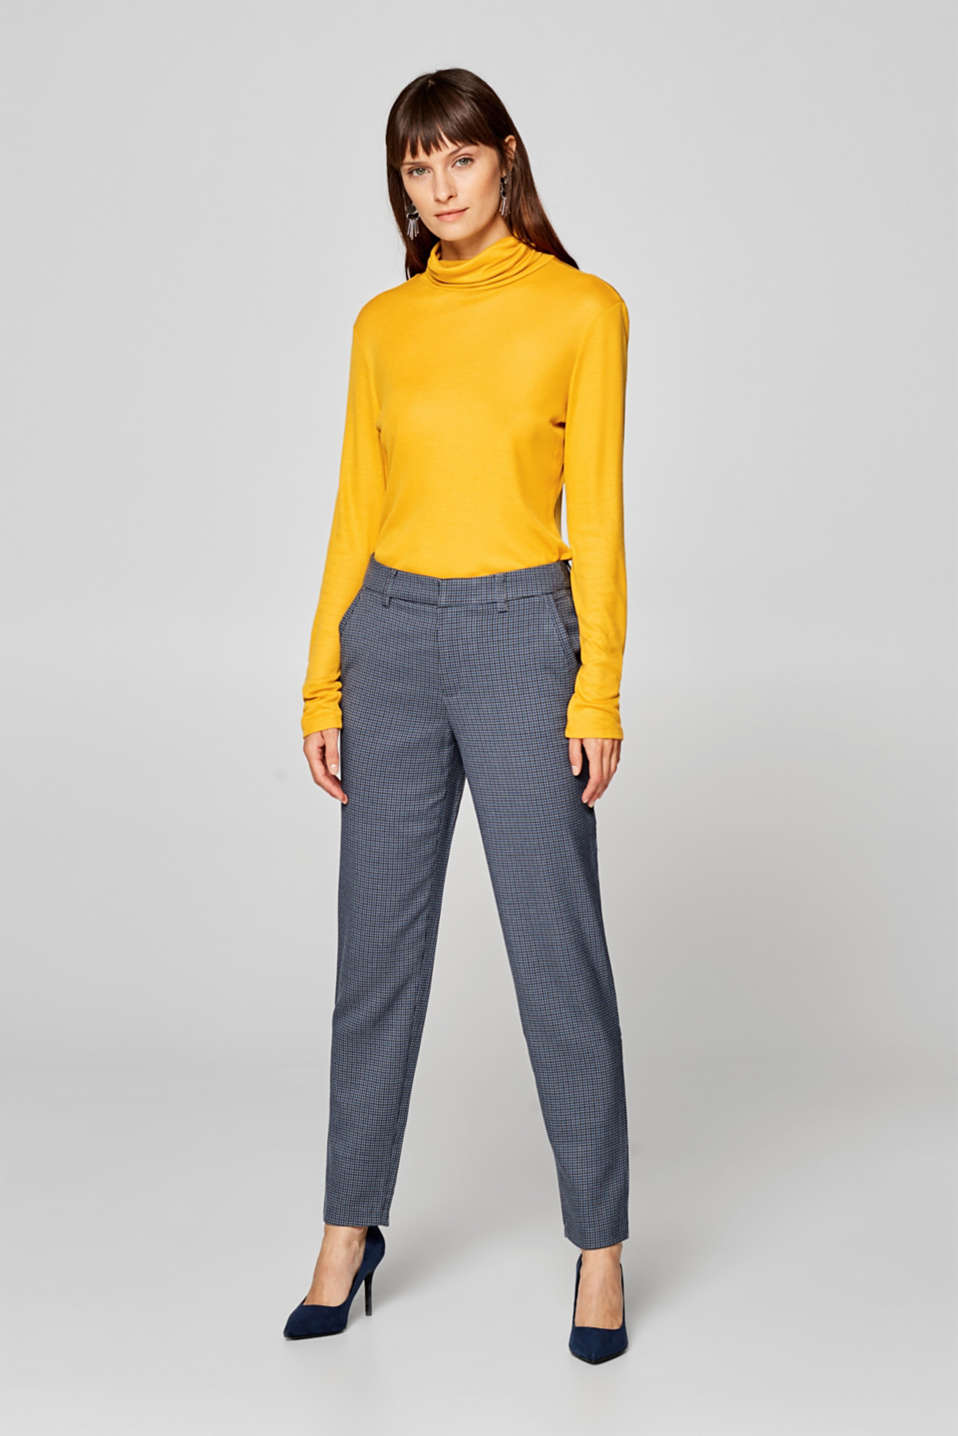 Esprit - Stretch trousers with a mini check pattern